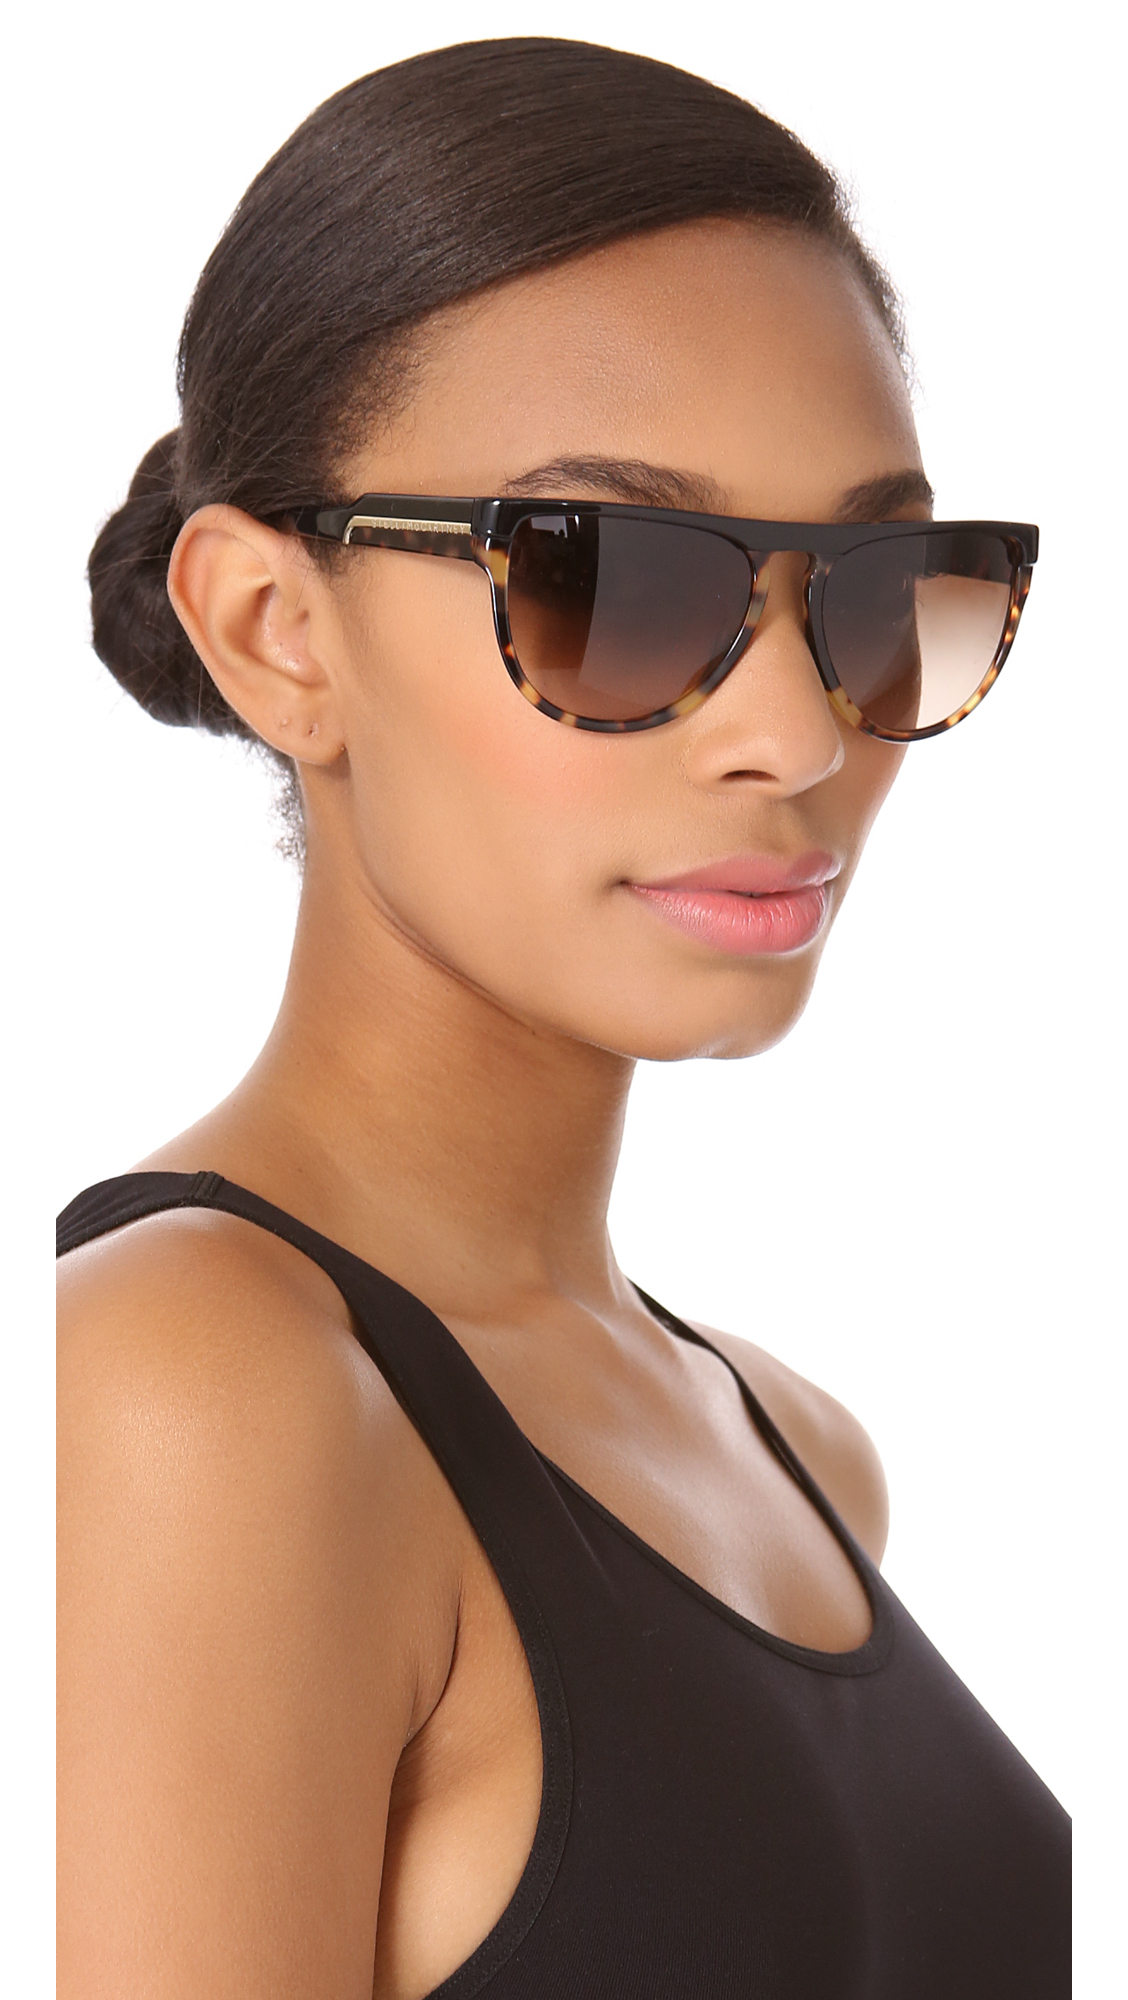 flat top sunglasses j3wh  flat top sunglasses